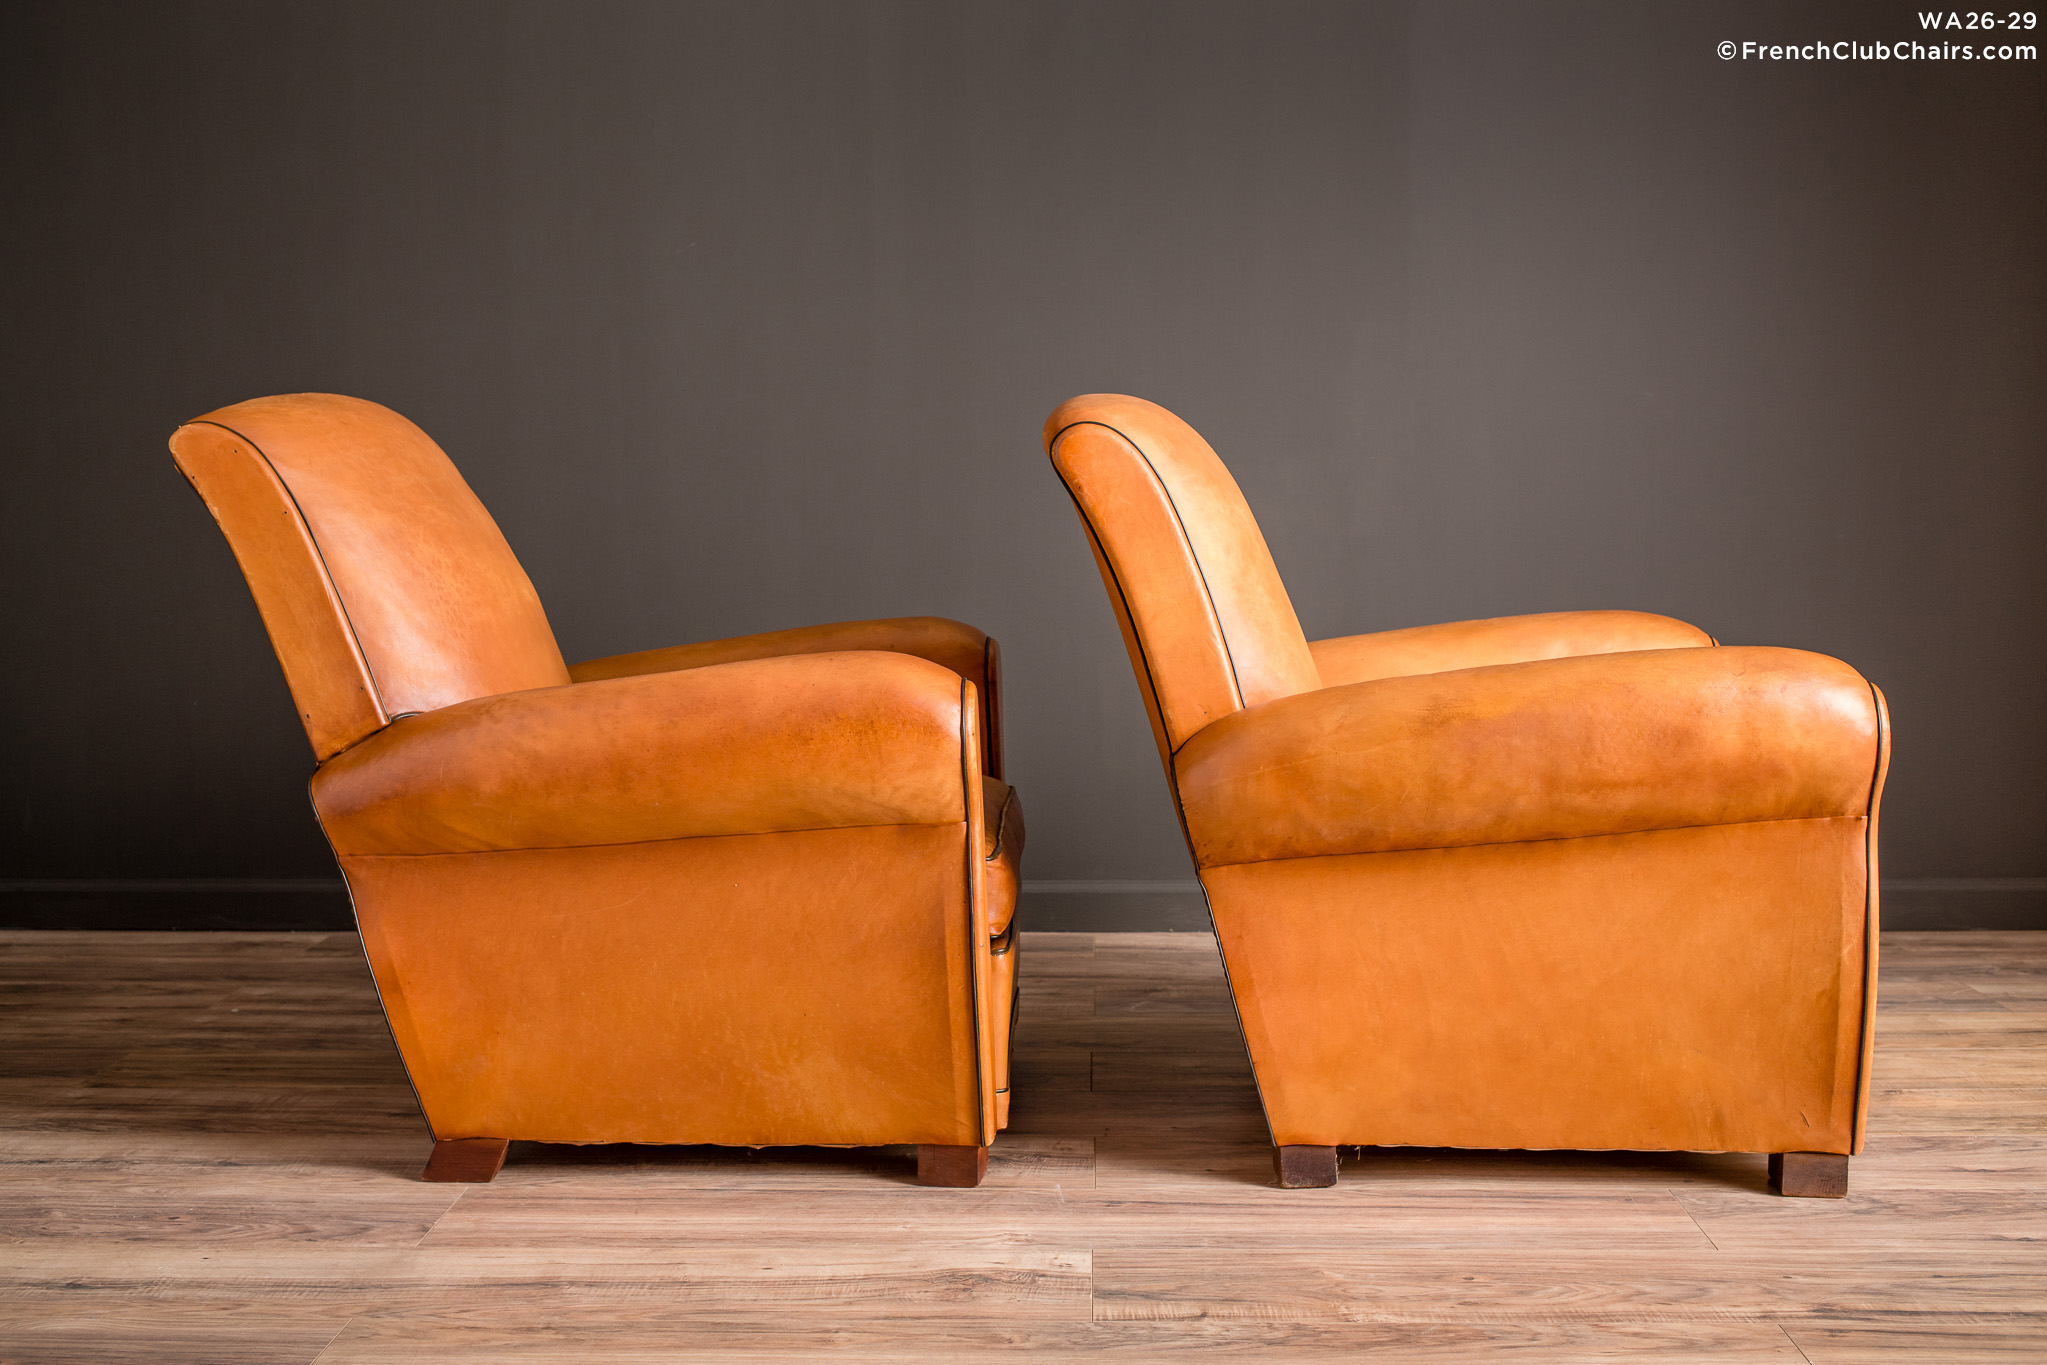 WA_26-29_Samur_Slope_Pair_R_3RT-v01-williams-antiks-leather-french-club-chair-wa_fcccom